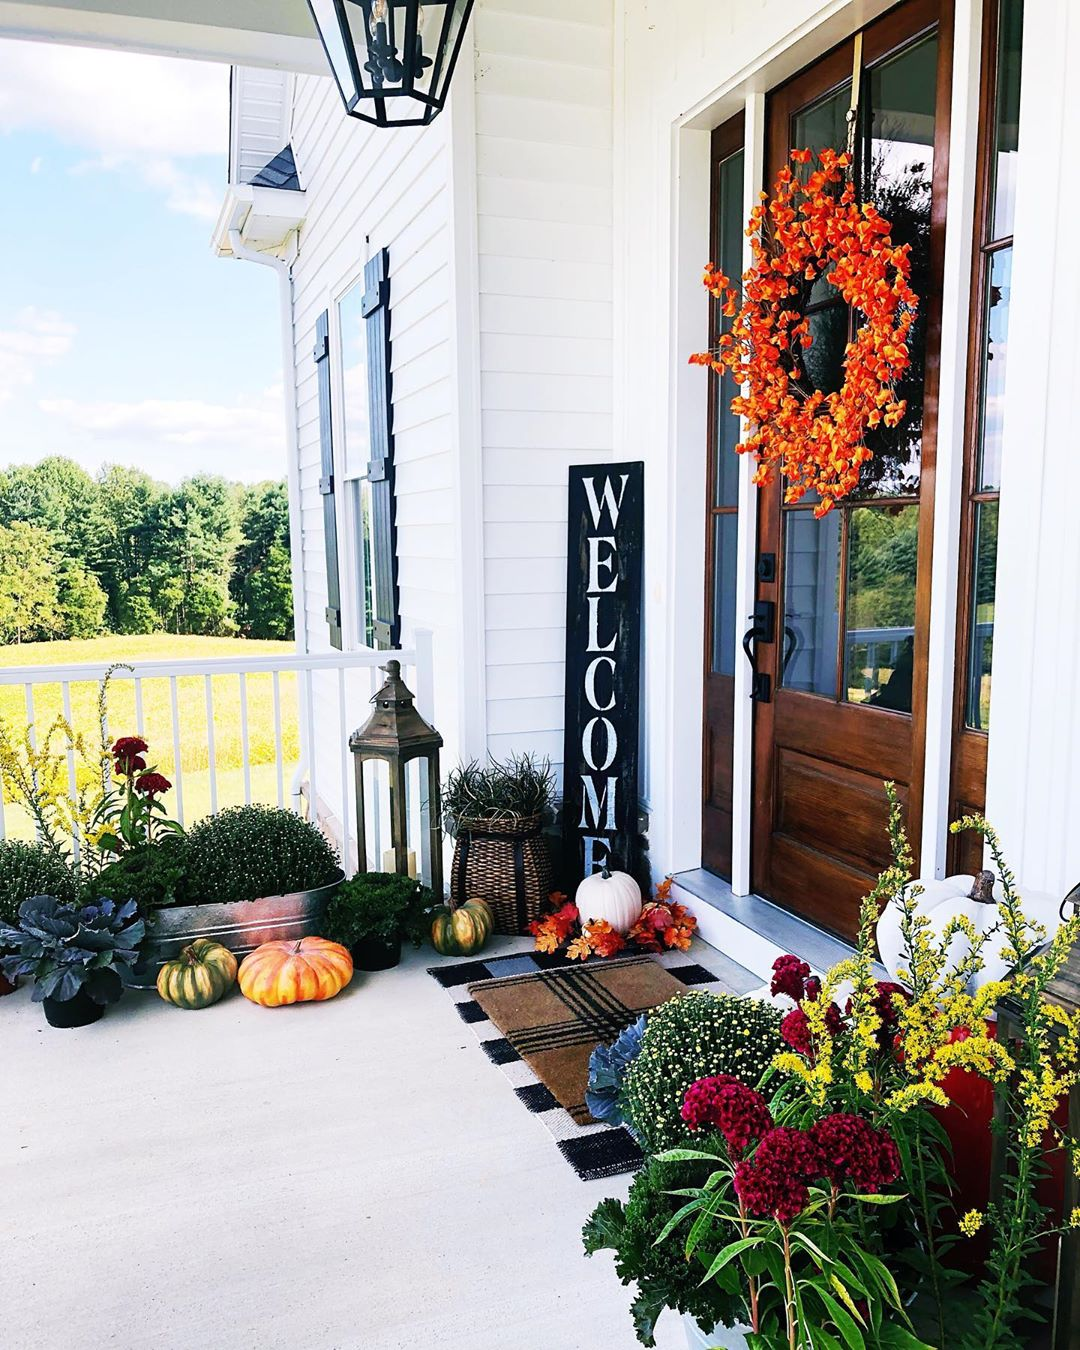 1569404388 39 front porch decor ideas to welcome fall with - Front Porch Decor Ideas To Welcome Fall With